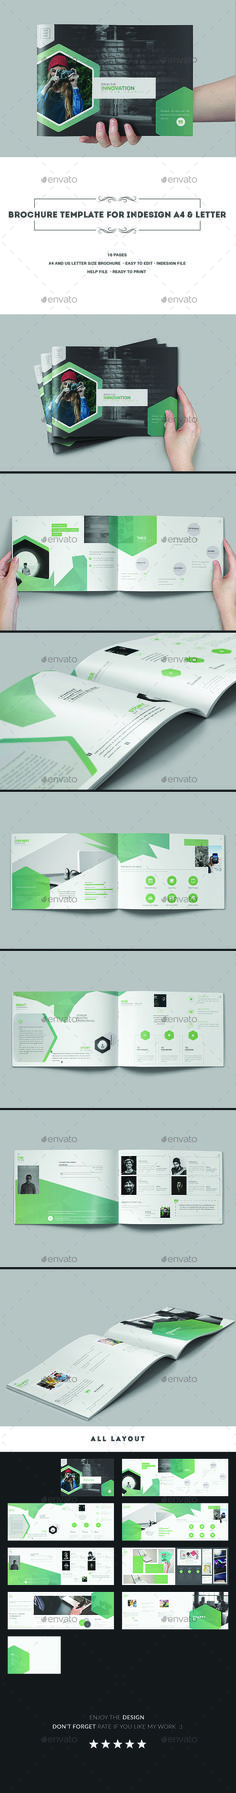 Brochure template for Indesign - A4 and Letter - Corporate Brochures Download here : https://graphicriver.net/item/brochure-template-for-indesign-a4-and-letter/19479893?s_rank=14&ref=Al-fatih